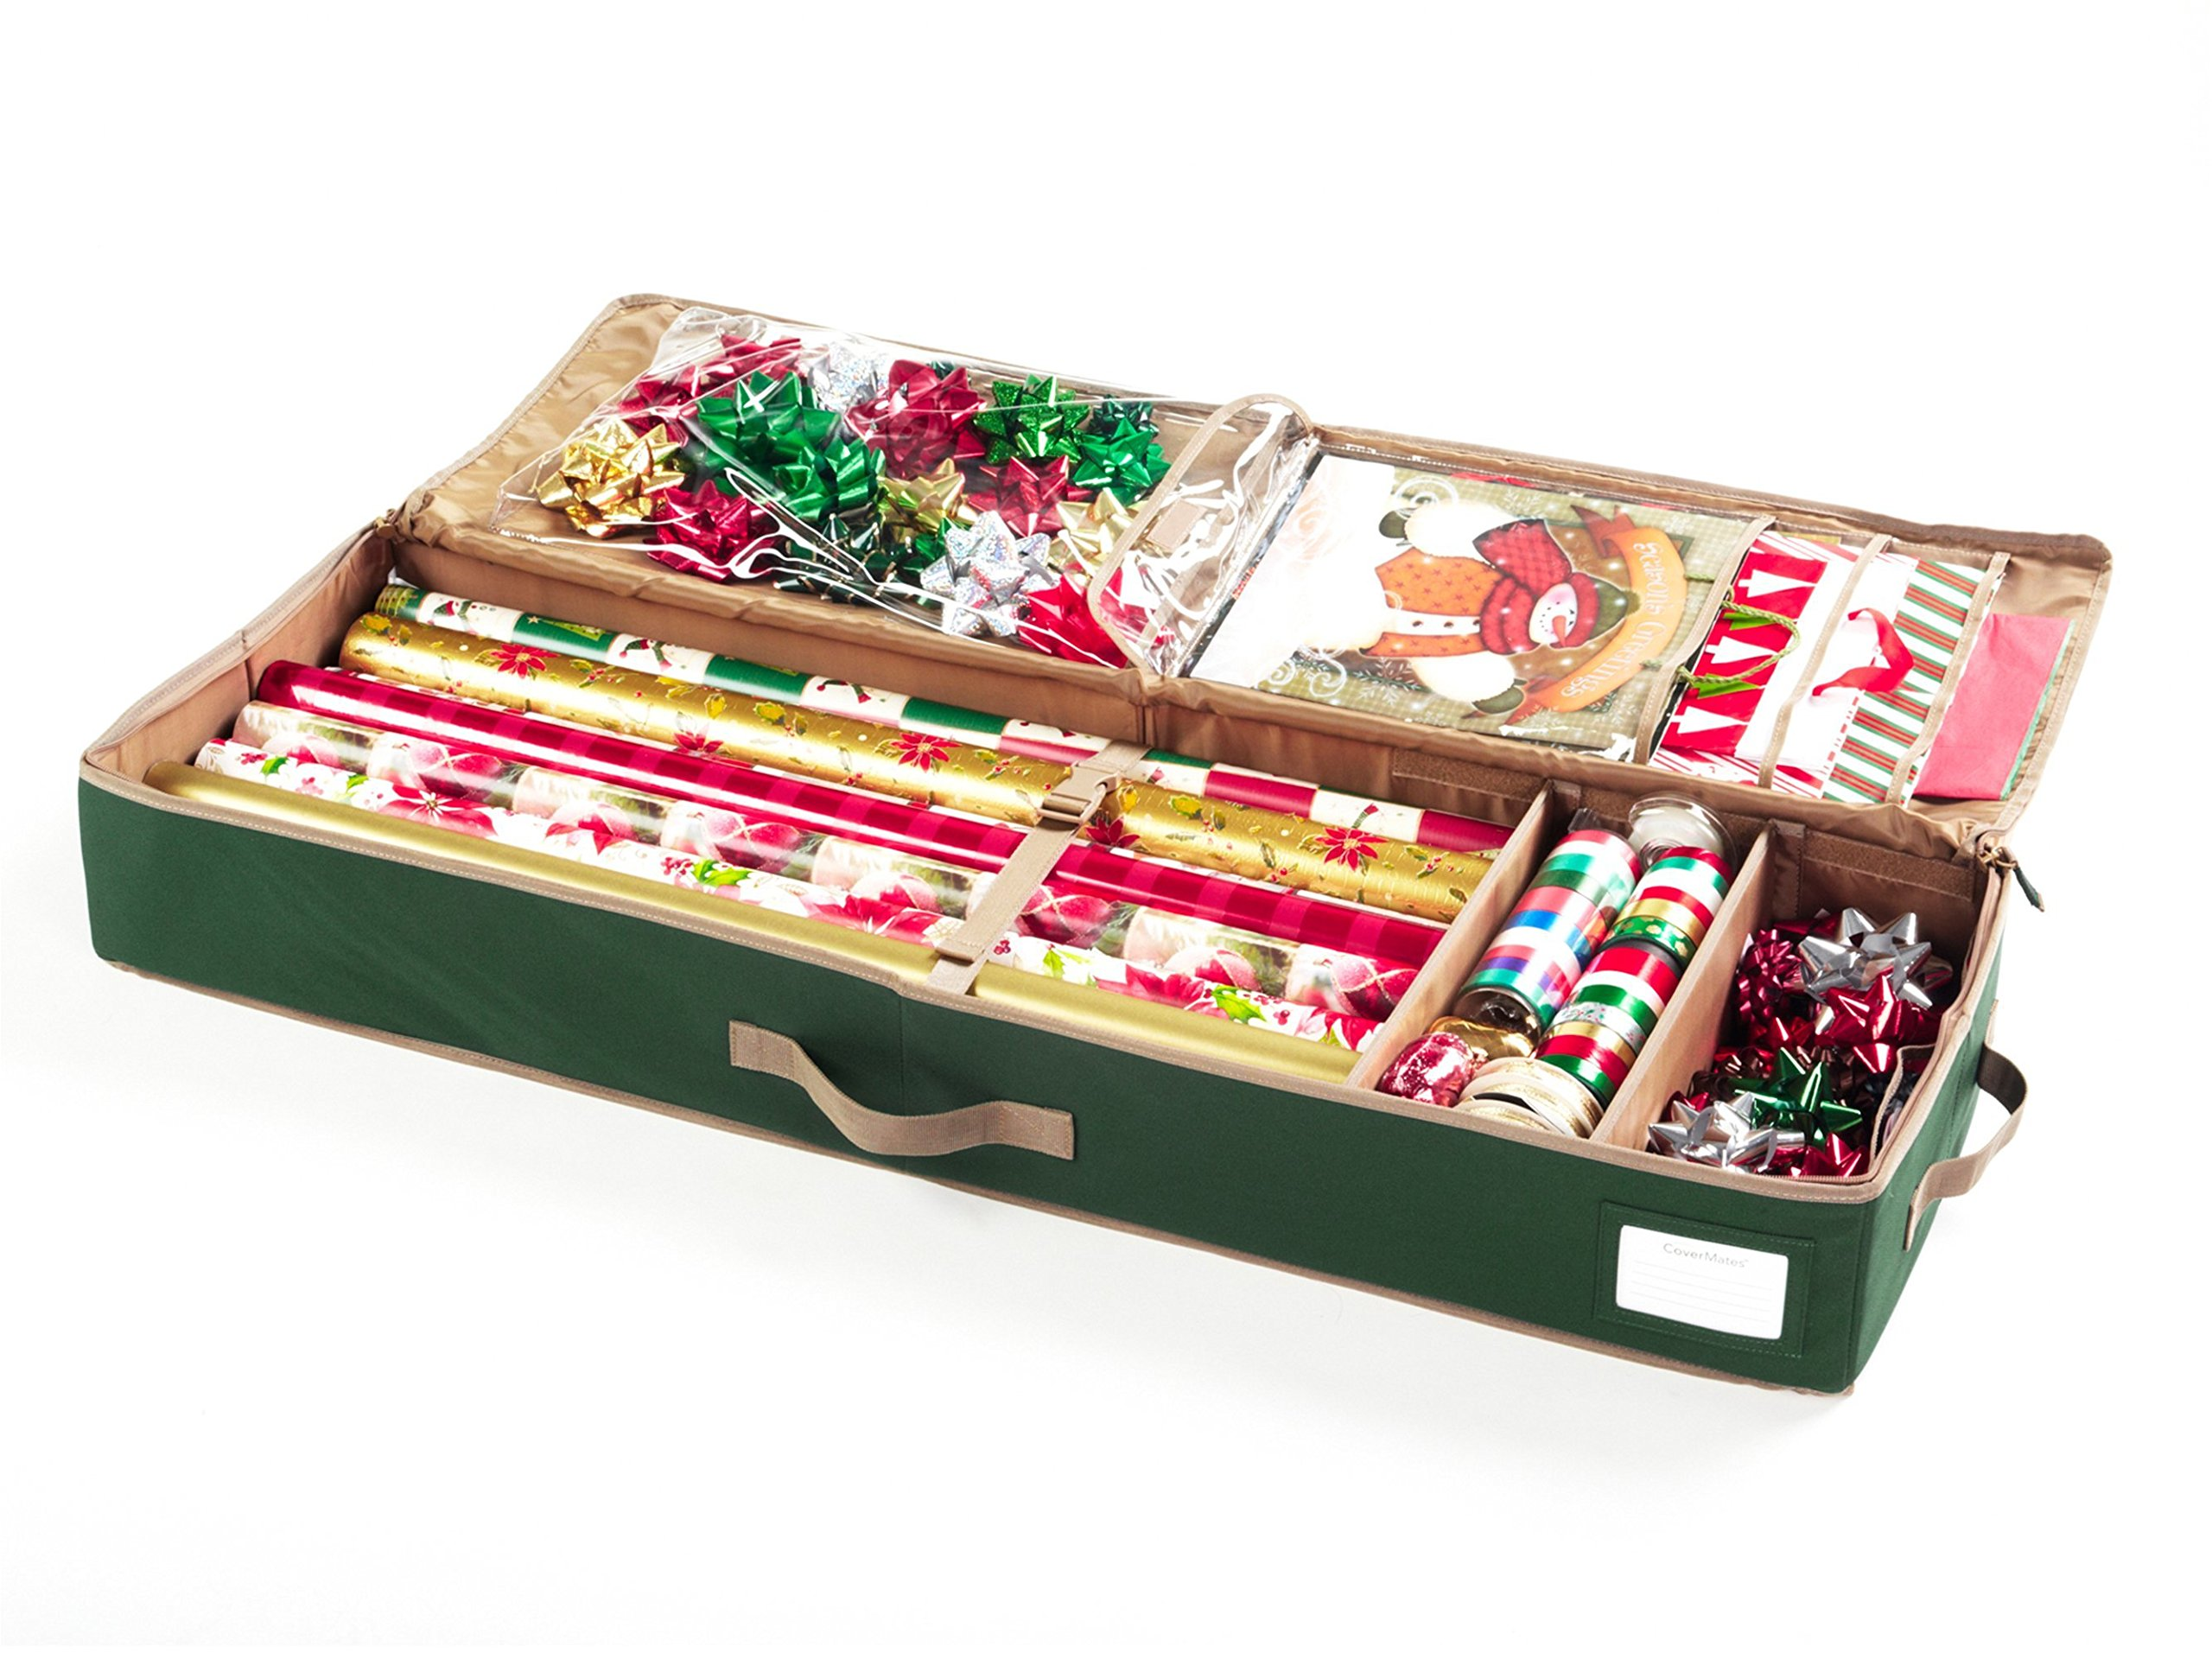 CoverMates – Premium Deluxe Gift Wrap Organizer – Holds up to 15 Rolls + Accessories – 3 Year Warranty- Green